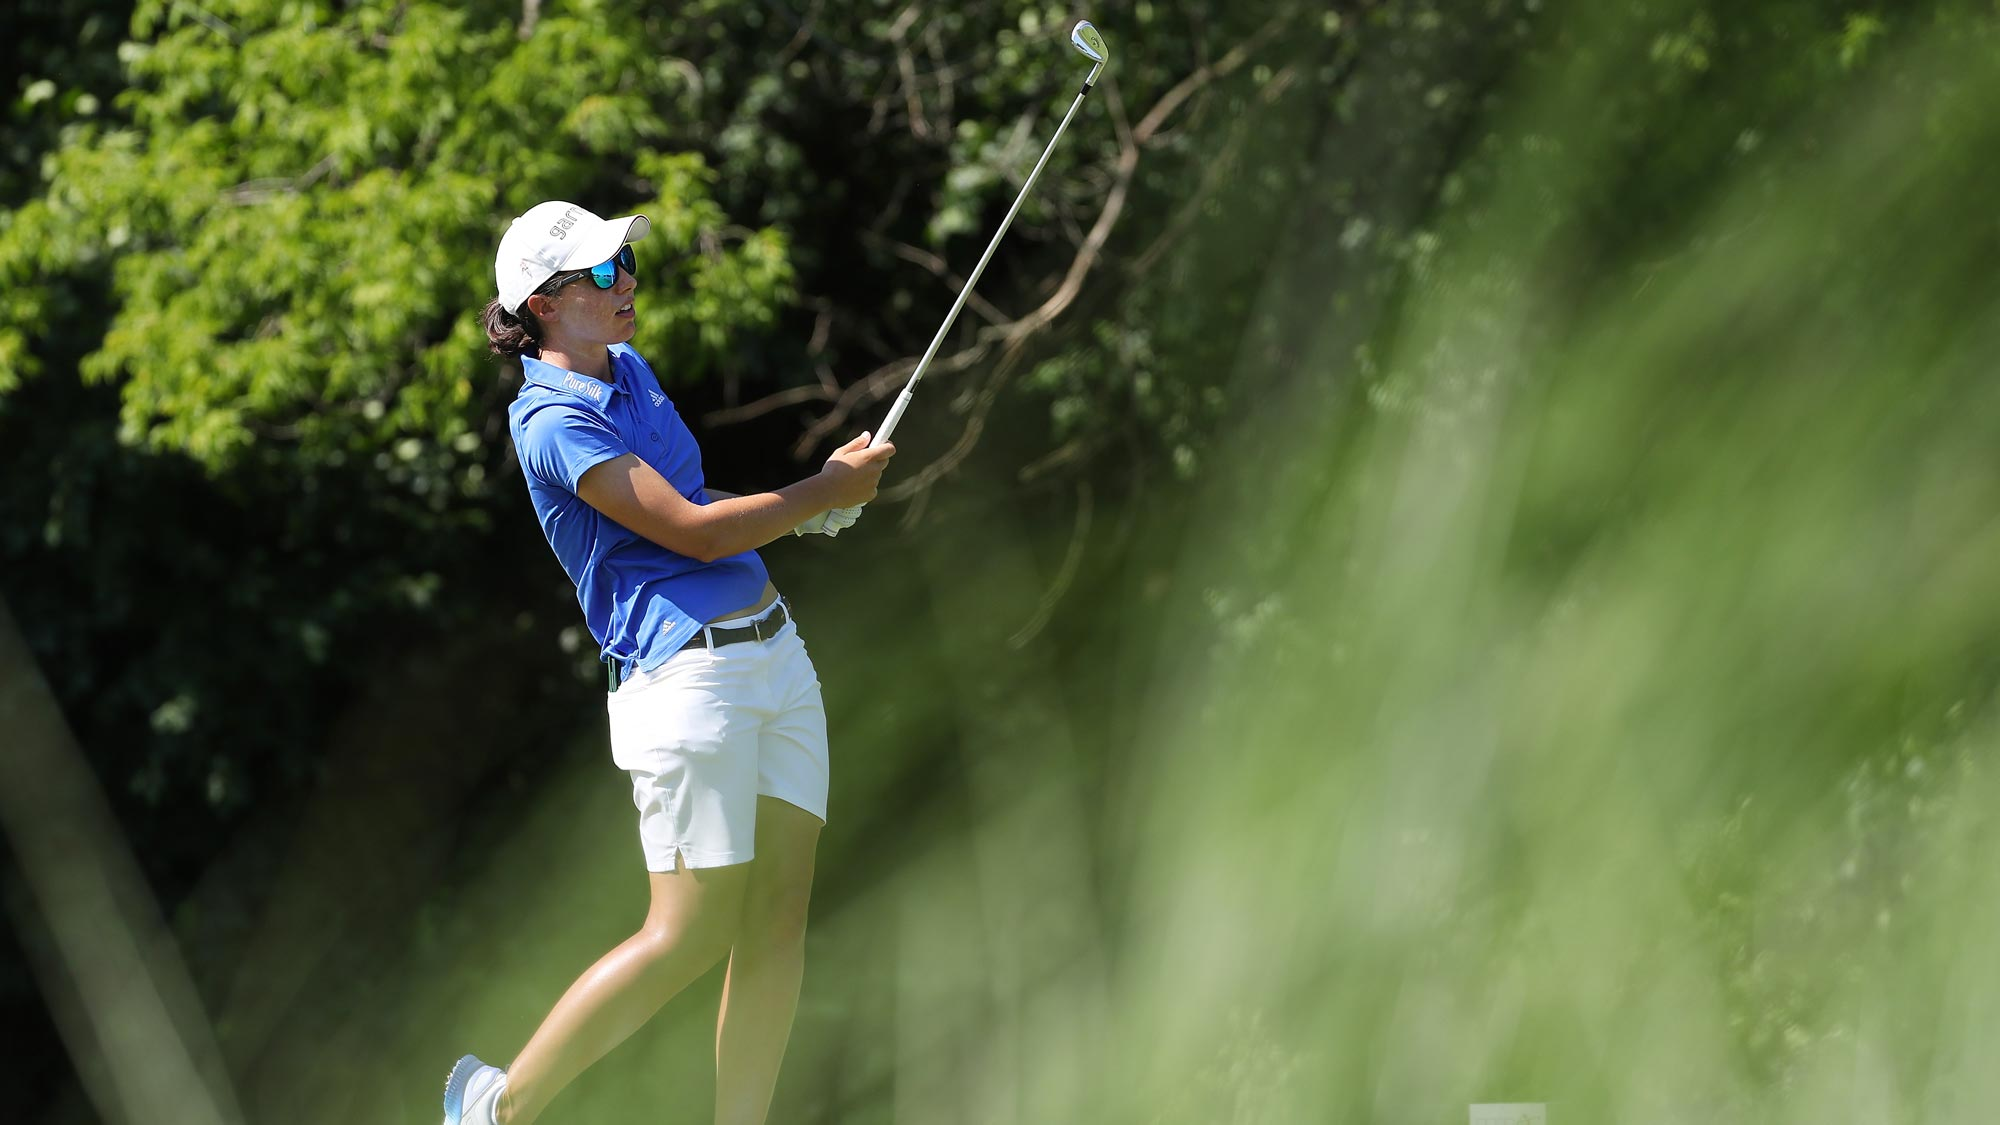 Carlota Ciganda of Spain watches her tee shot on the 17th hole during the second round of the 2018 KPMG PGA Championship